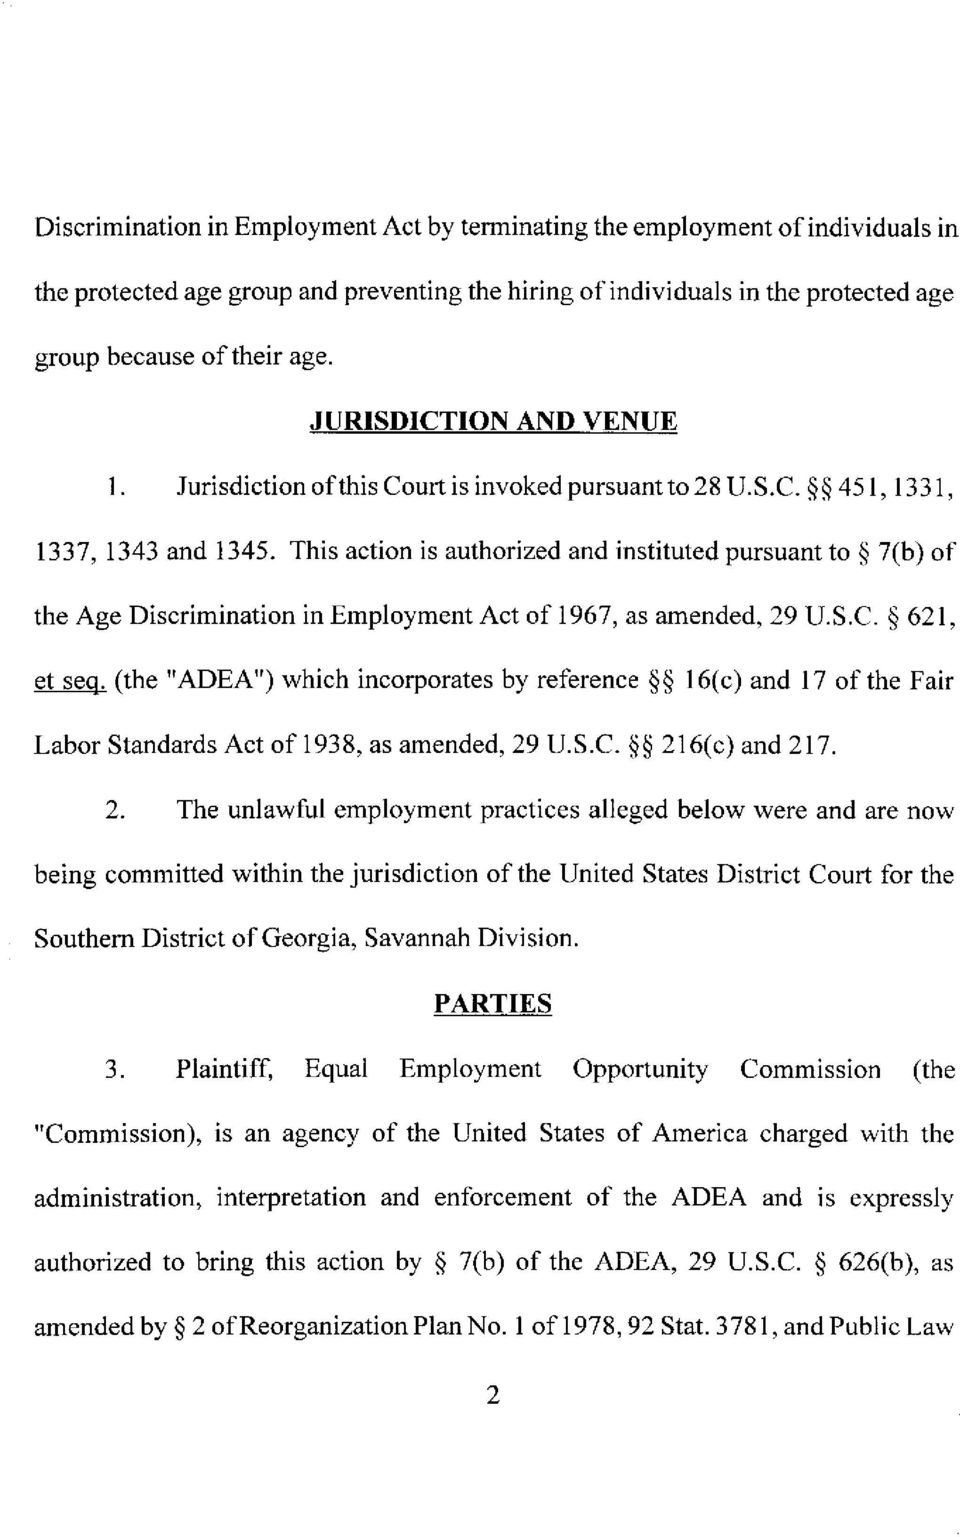 This action is authorized and instituted pursuant to 7(b) of the Age Discrimination in Employment Act of 1967, as amended, 29 U.S.C.